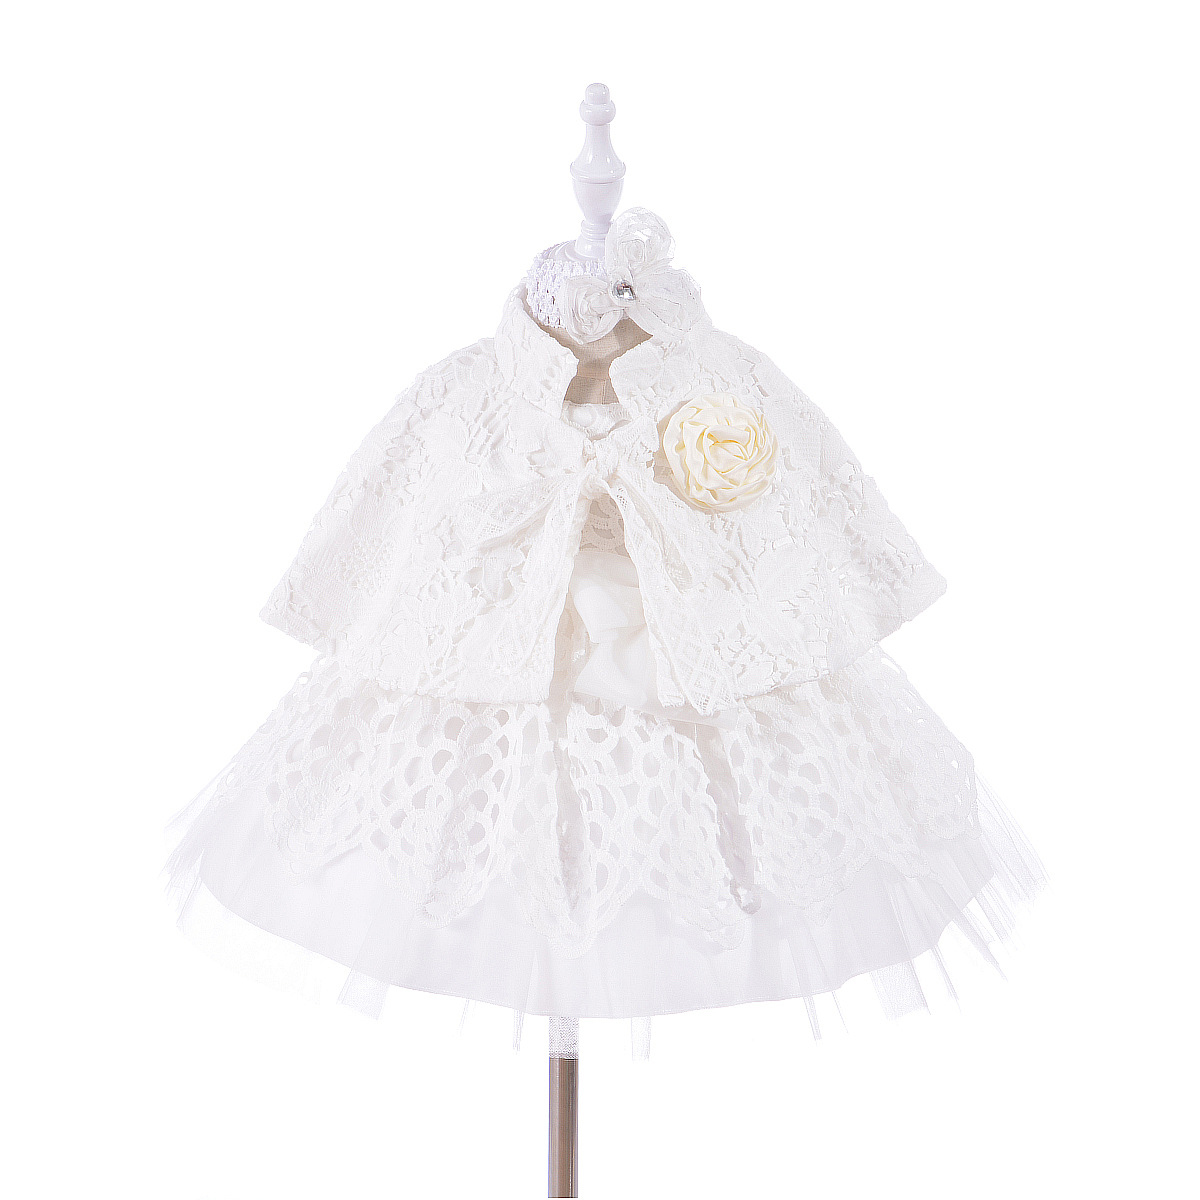 Christening Gown Embroidered Baptism Dress with Headband/Cape Coat Newborn Baby Dress Lace Frocks Special Occasion Outfits A015 цена 2017